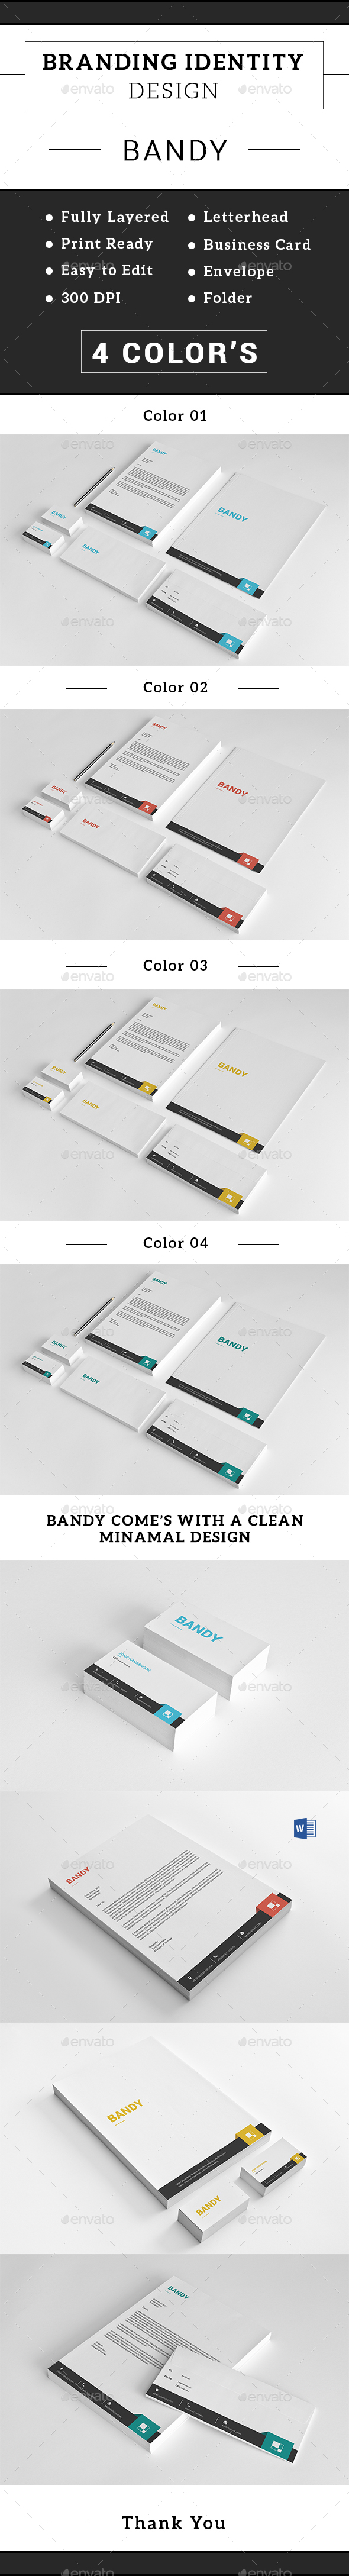 Corporate Stationery Set-v01 - Stationery Print Templates